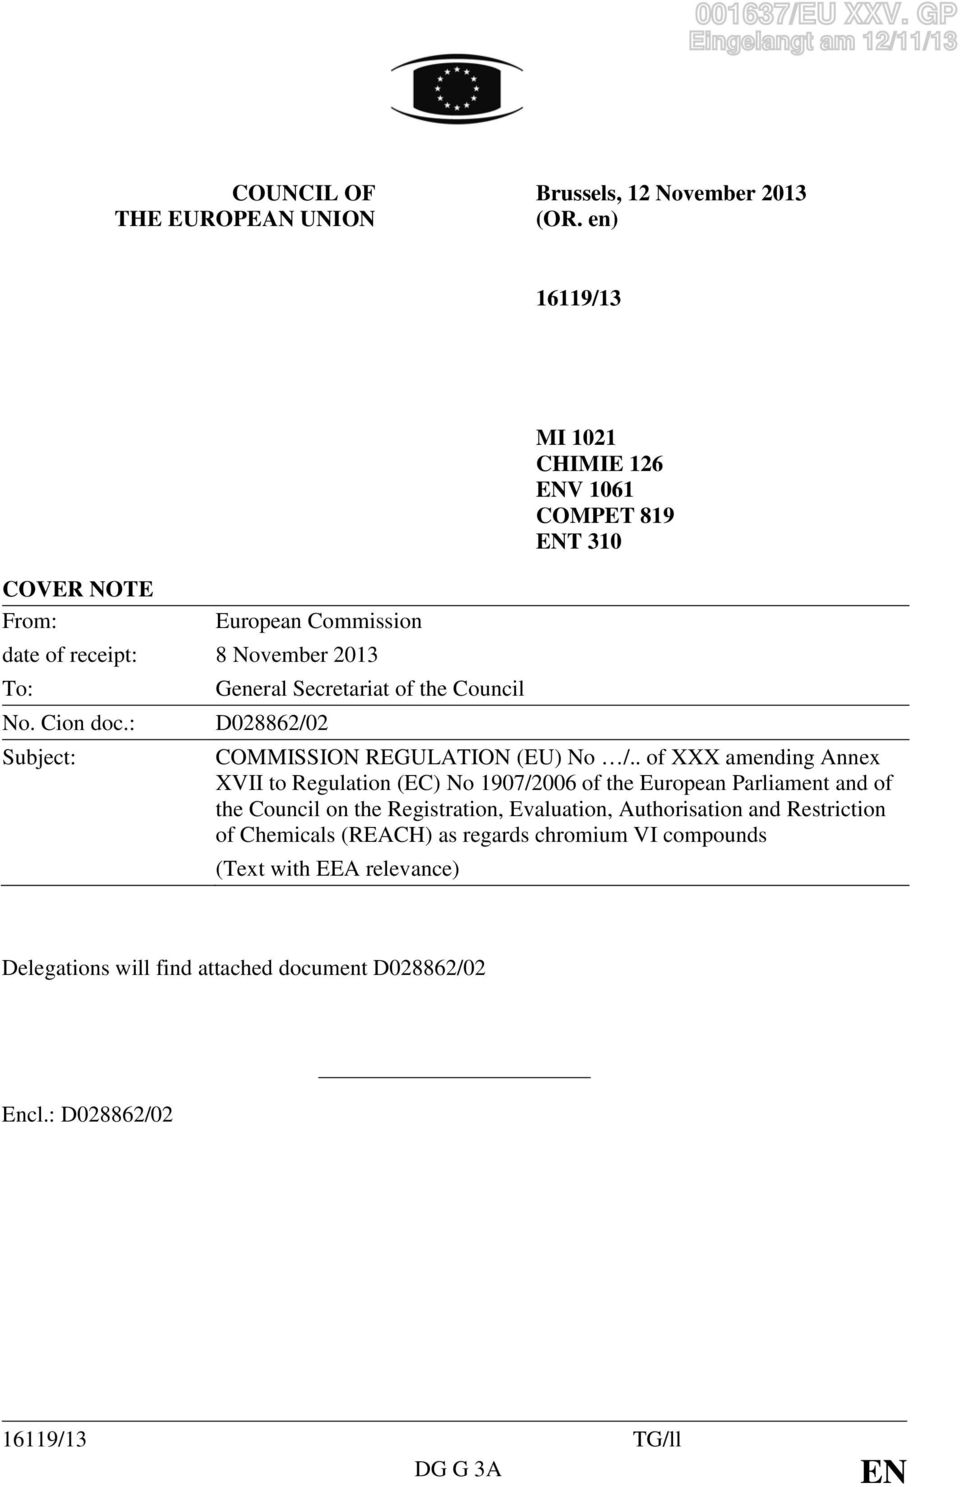 No. Cion doc.: D028862/02 Subject: COMMISSION REGULATION (EU) No /.